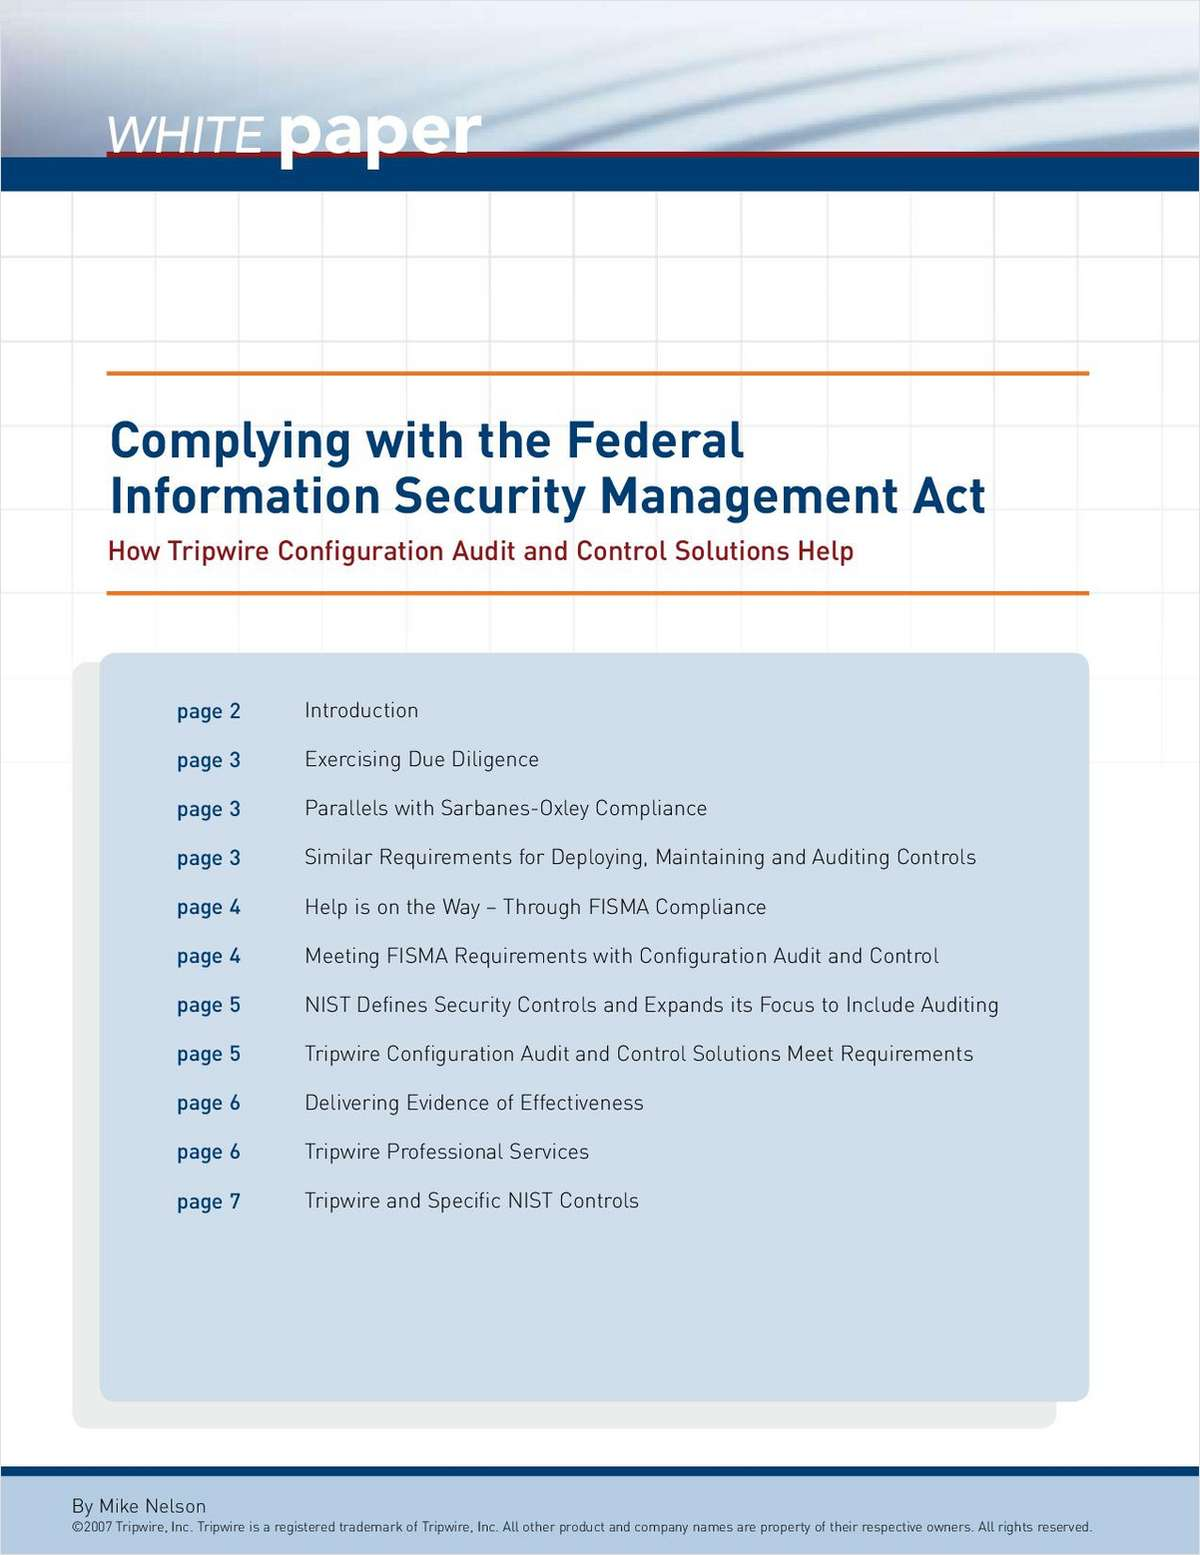 Complying with FISMA